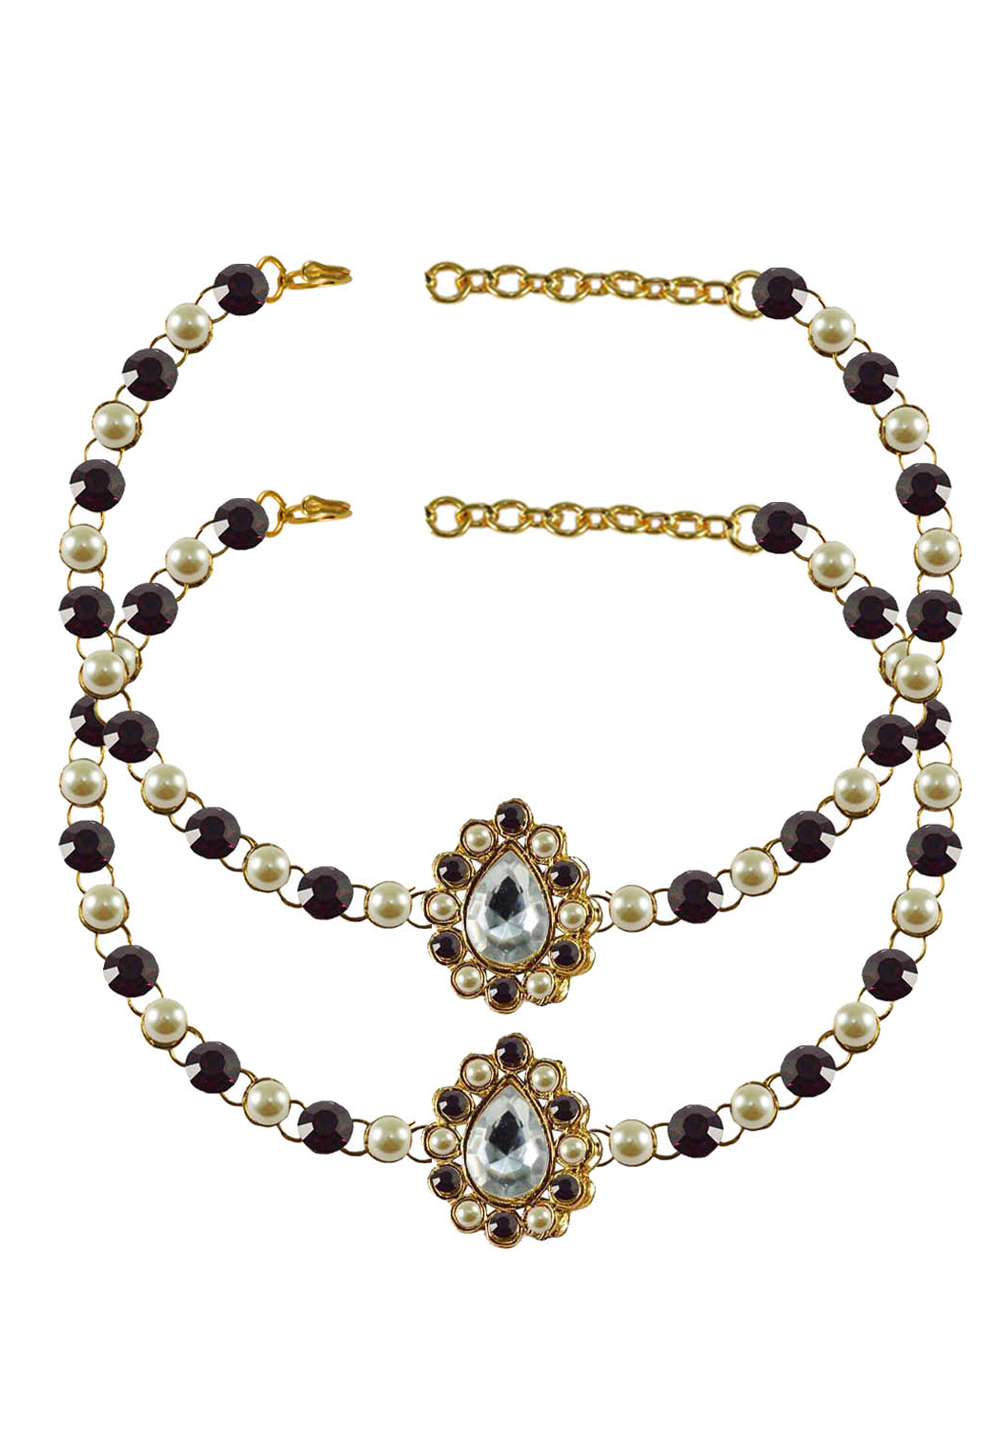 Maroon Brass Gold Plated Anklets 171340